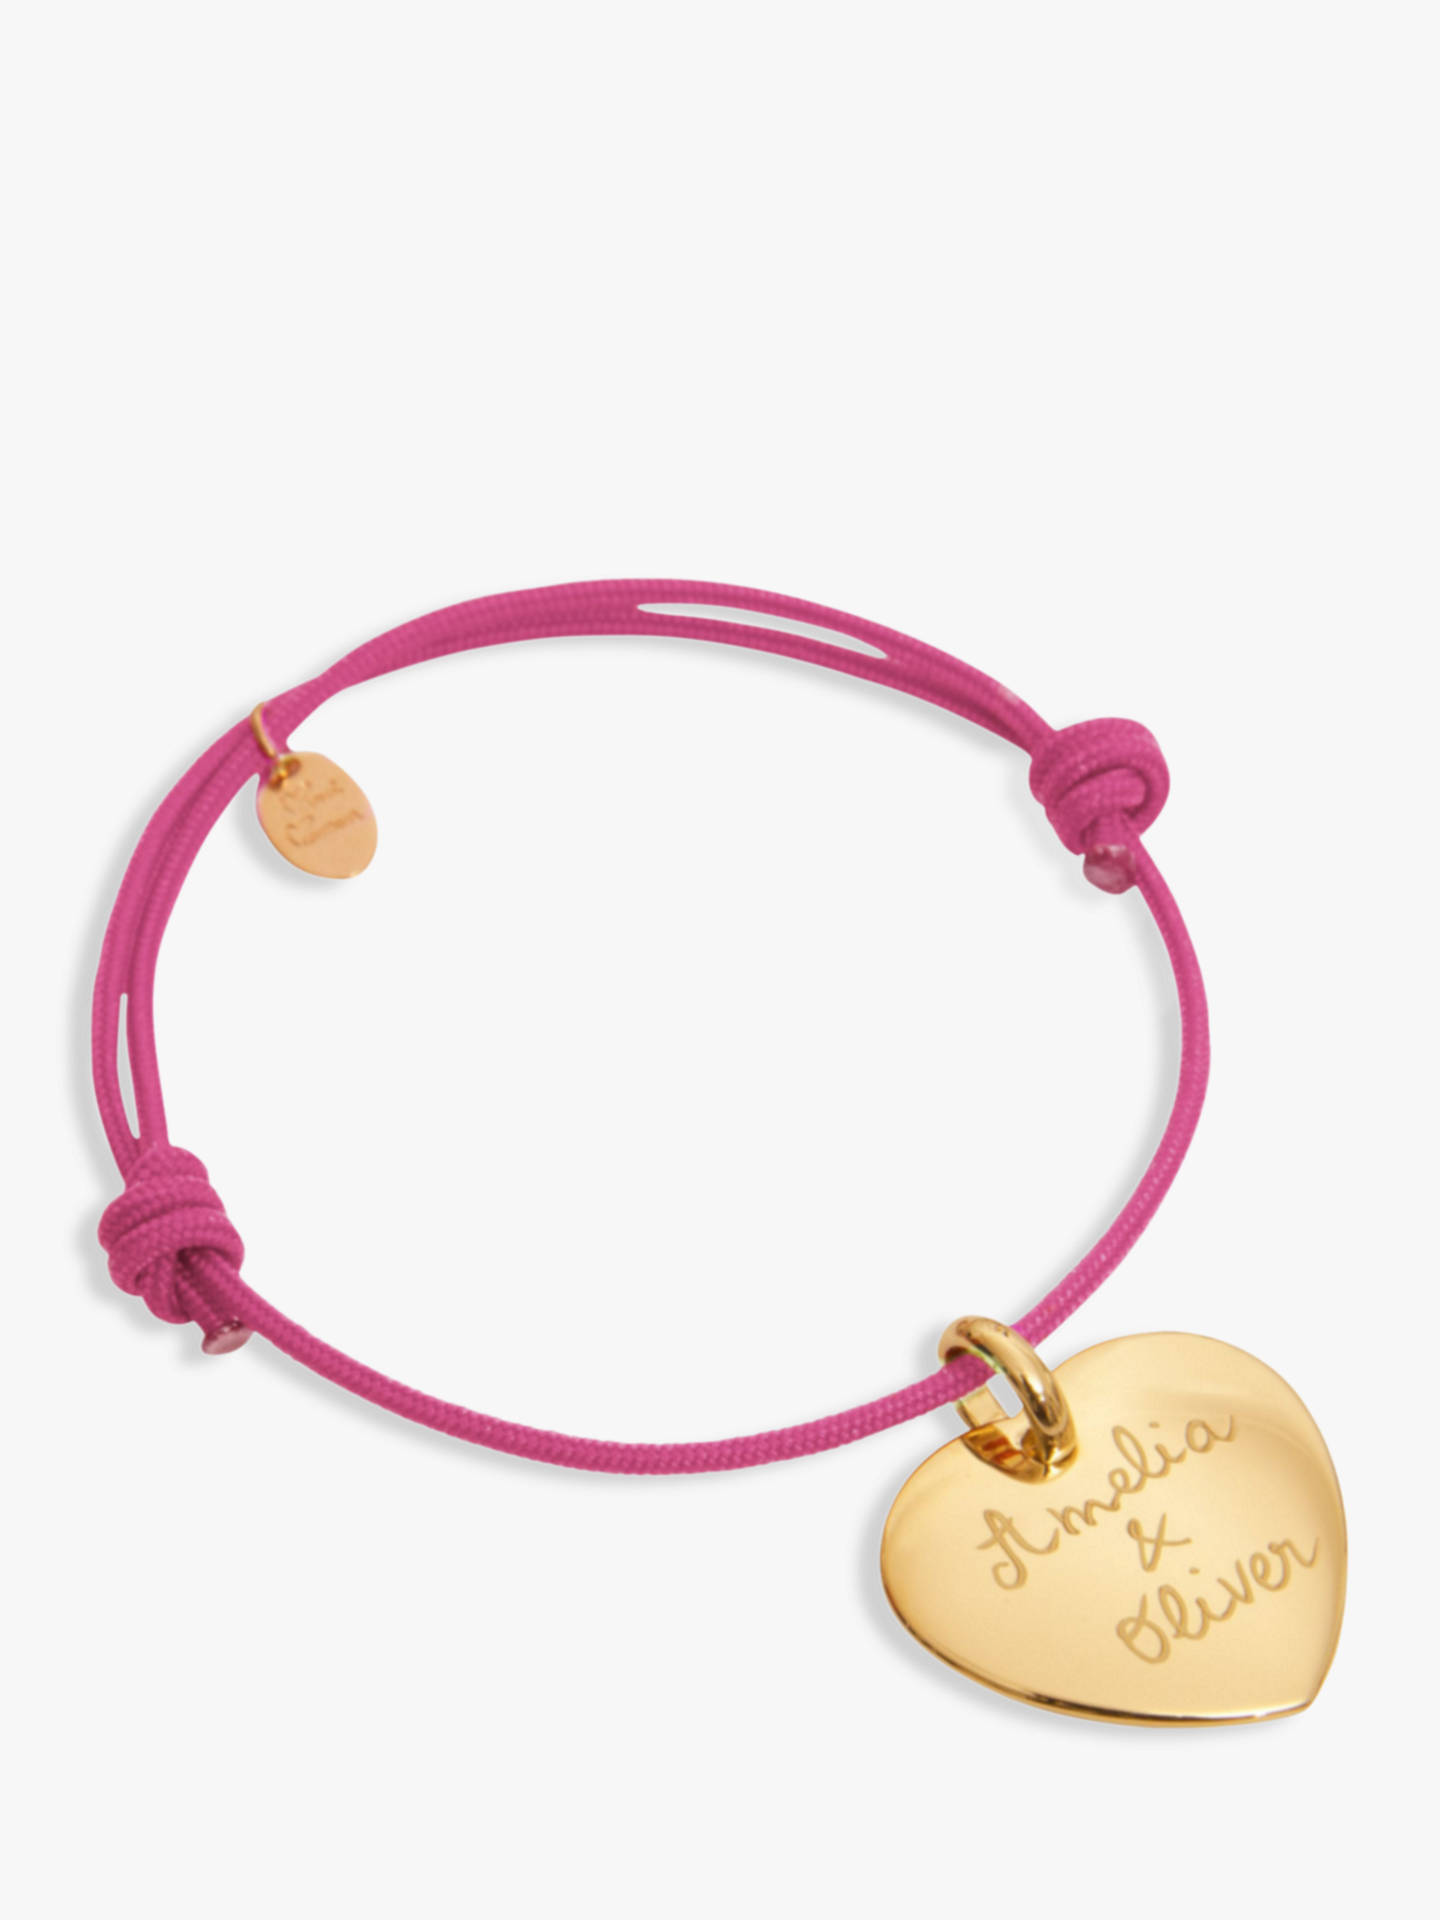 BuyMerci Maman Personalised 18ct Gold Plated Heart Bracelet, Fuchsia Online at johnlewis.com